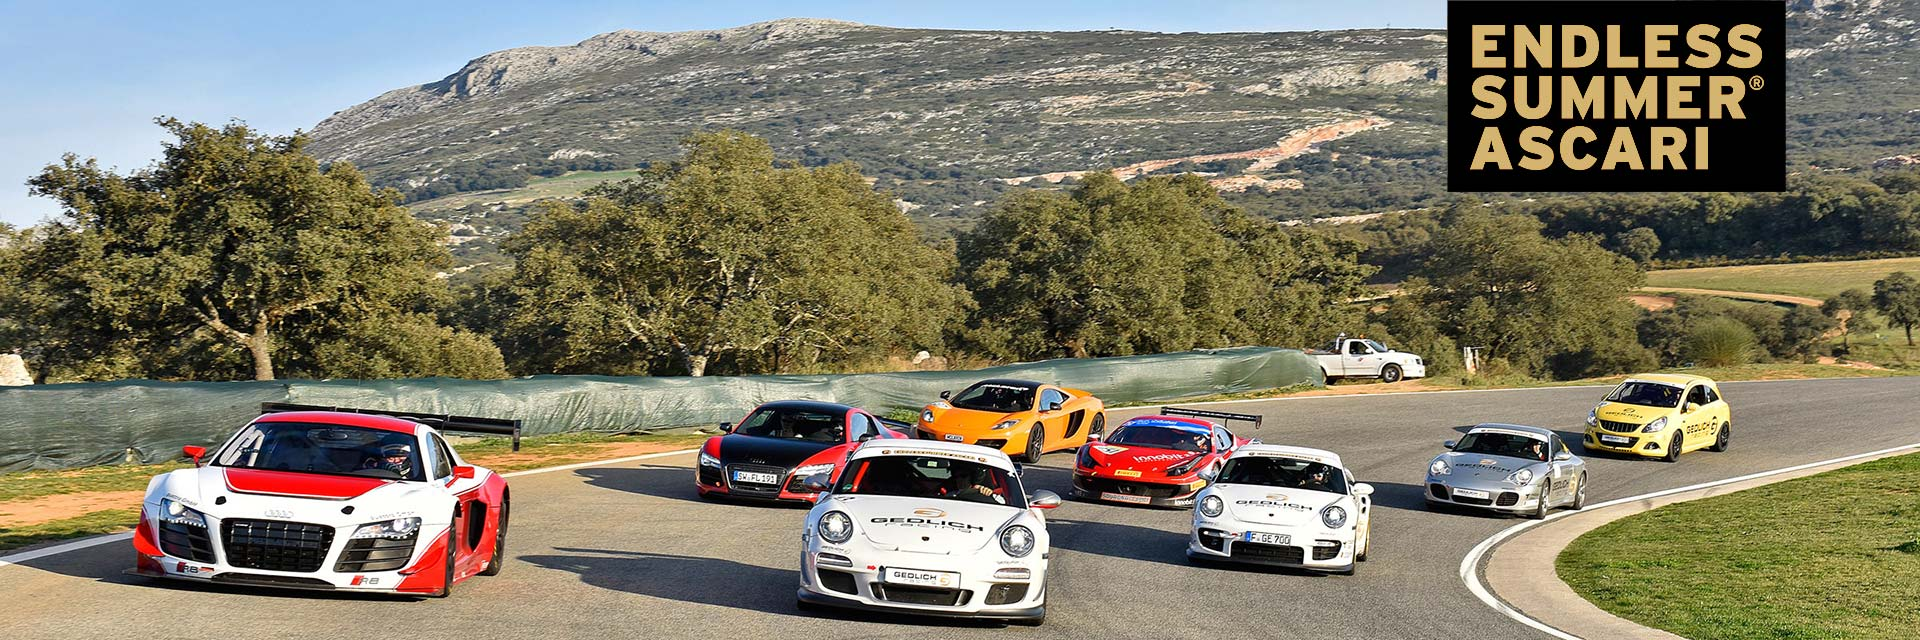 GEDLICH Racing - Endless Summer Ascari